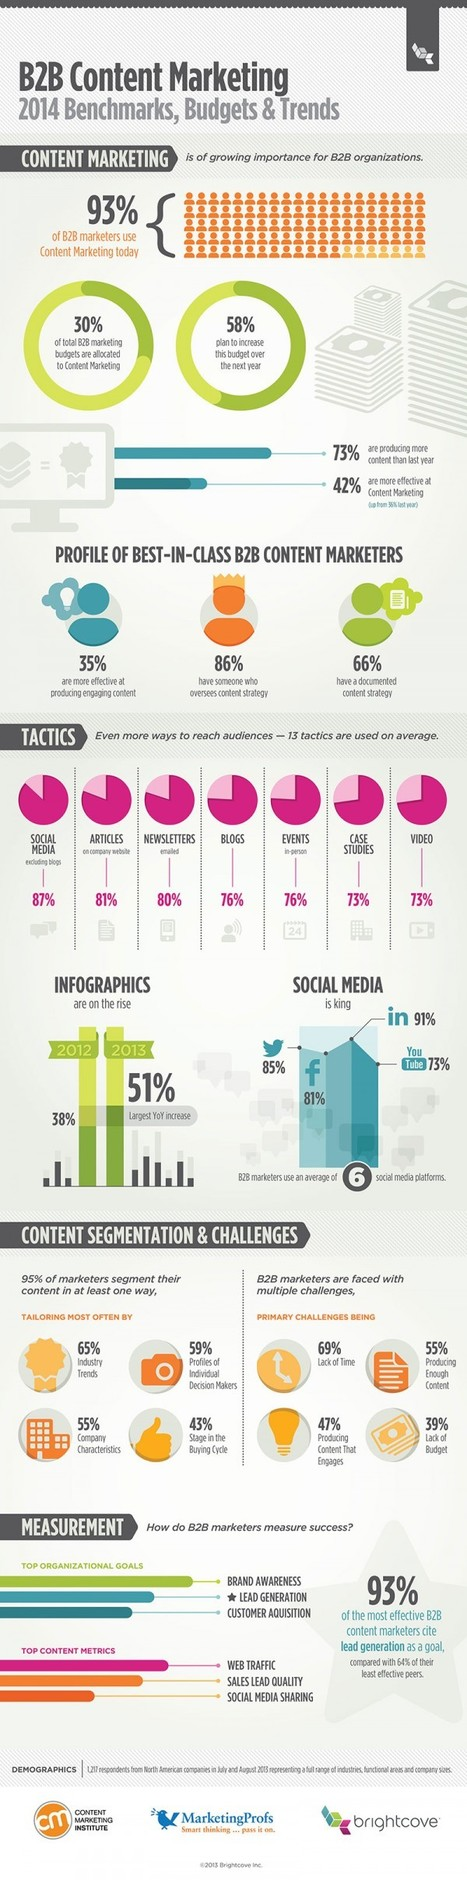 B2B Content Marketing in 2014 [Infographic] | Content Marketing and Curation for Small Business | Scoop.it